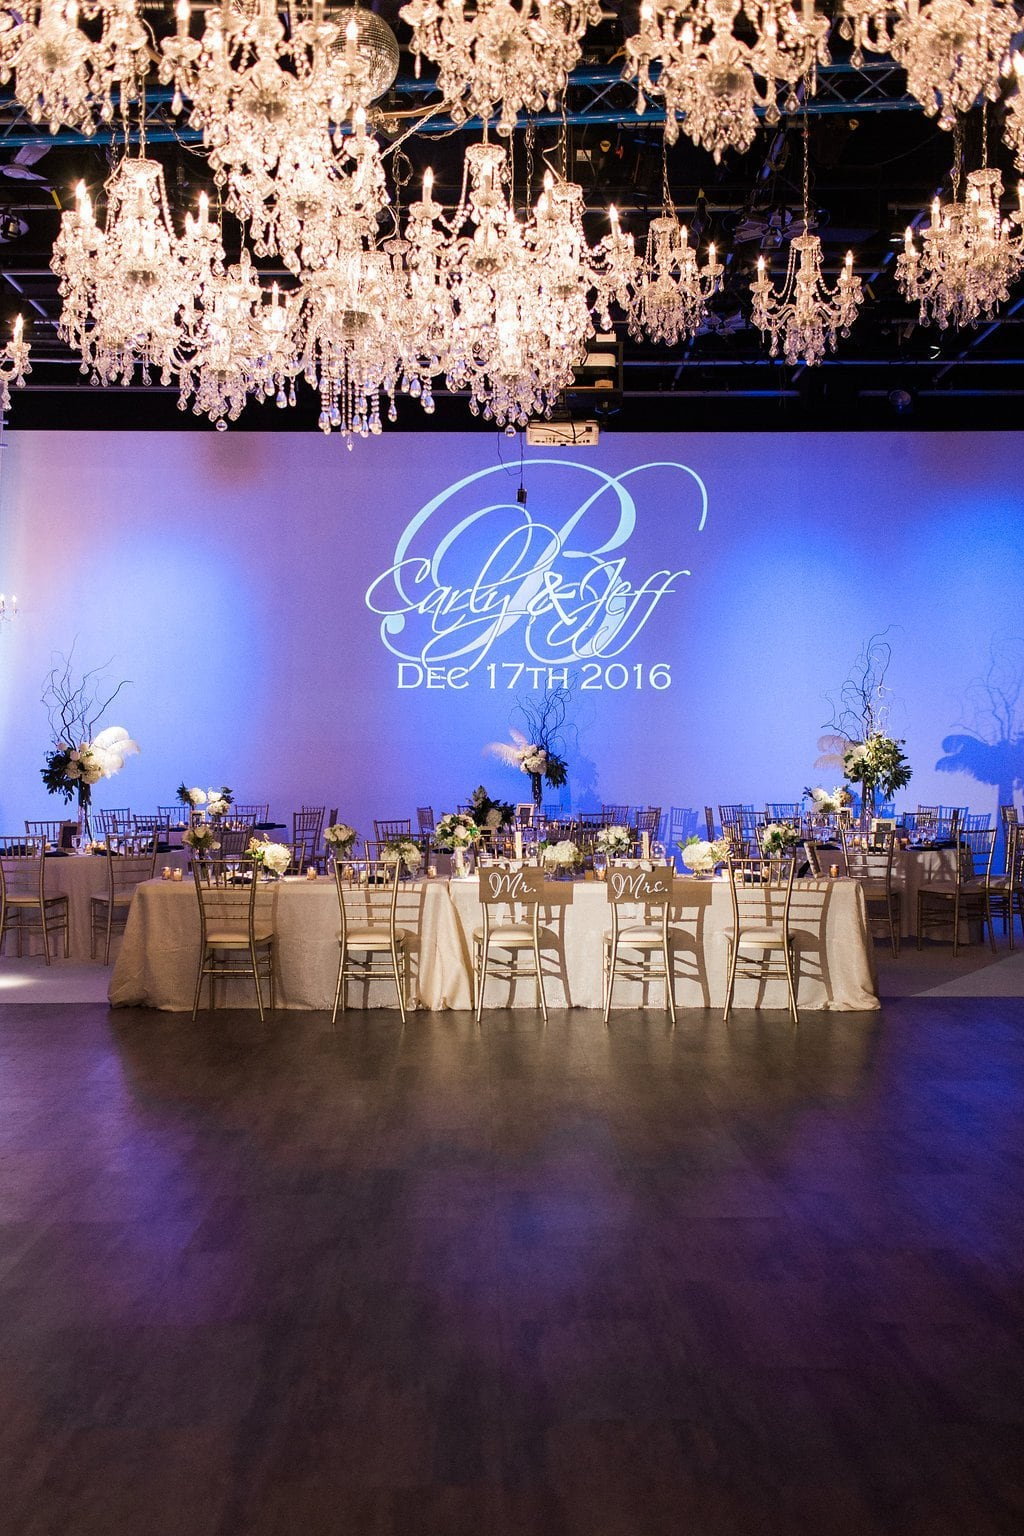 Gold and Navy blue accents with chandeliers and blue uplighting at J. Verno Studios - J Verno Studios Winter Wedding